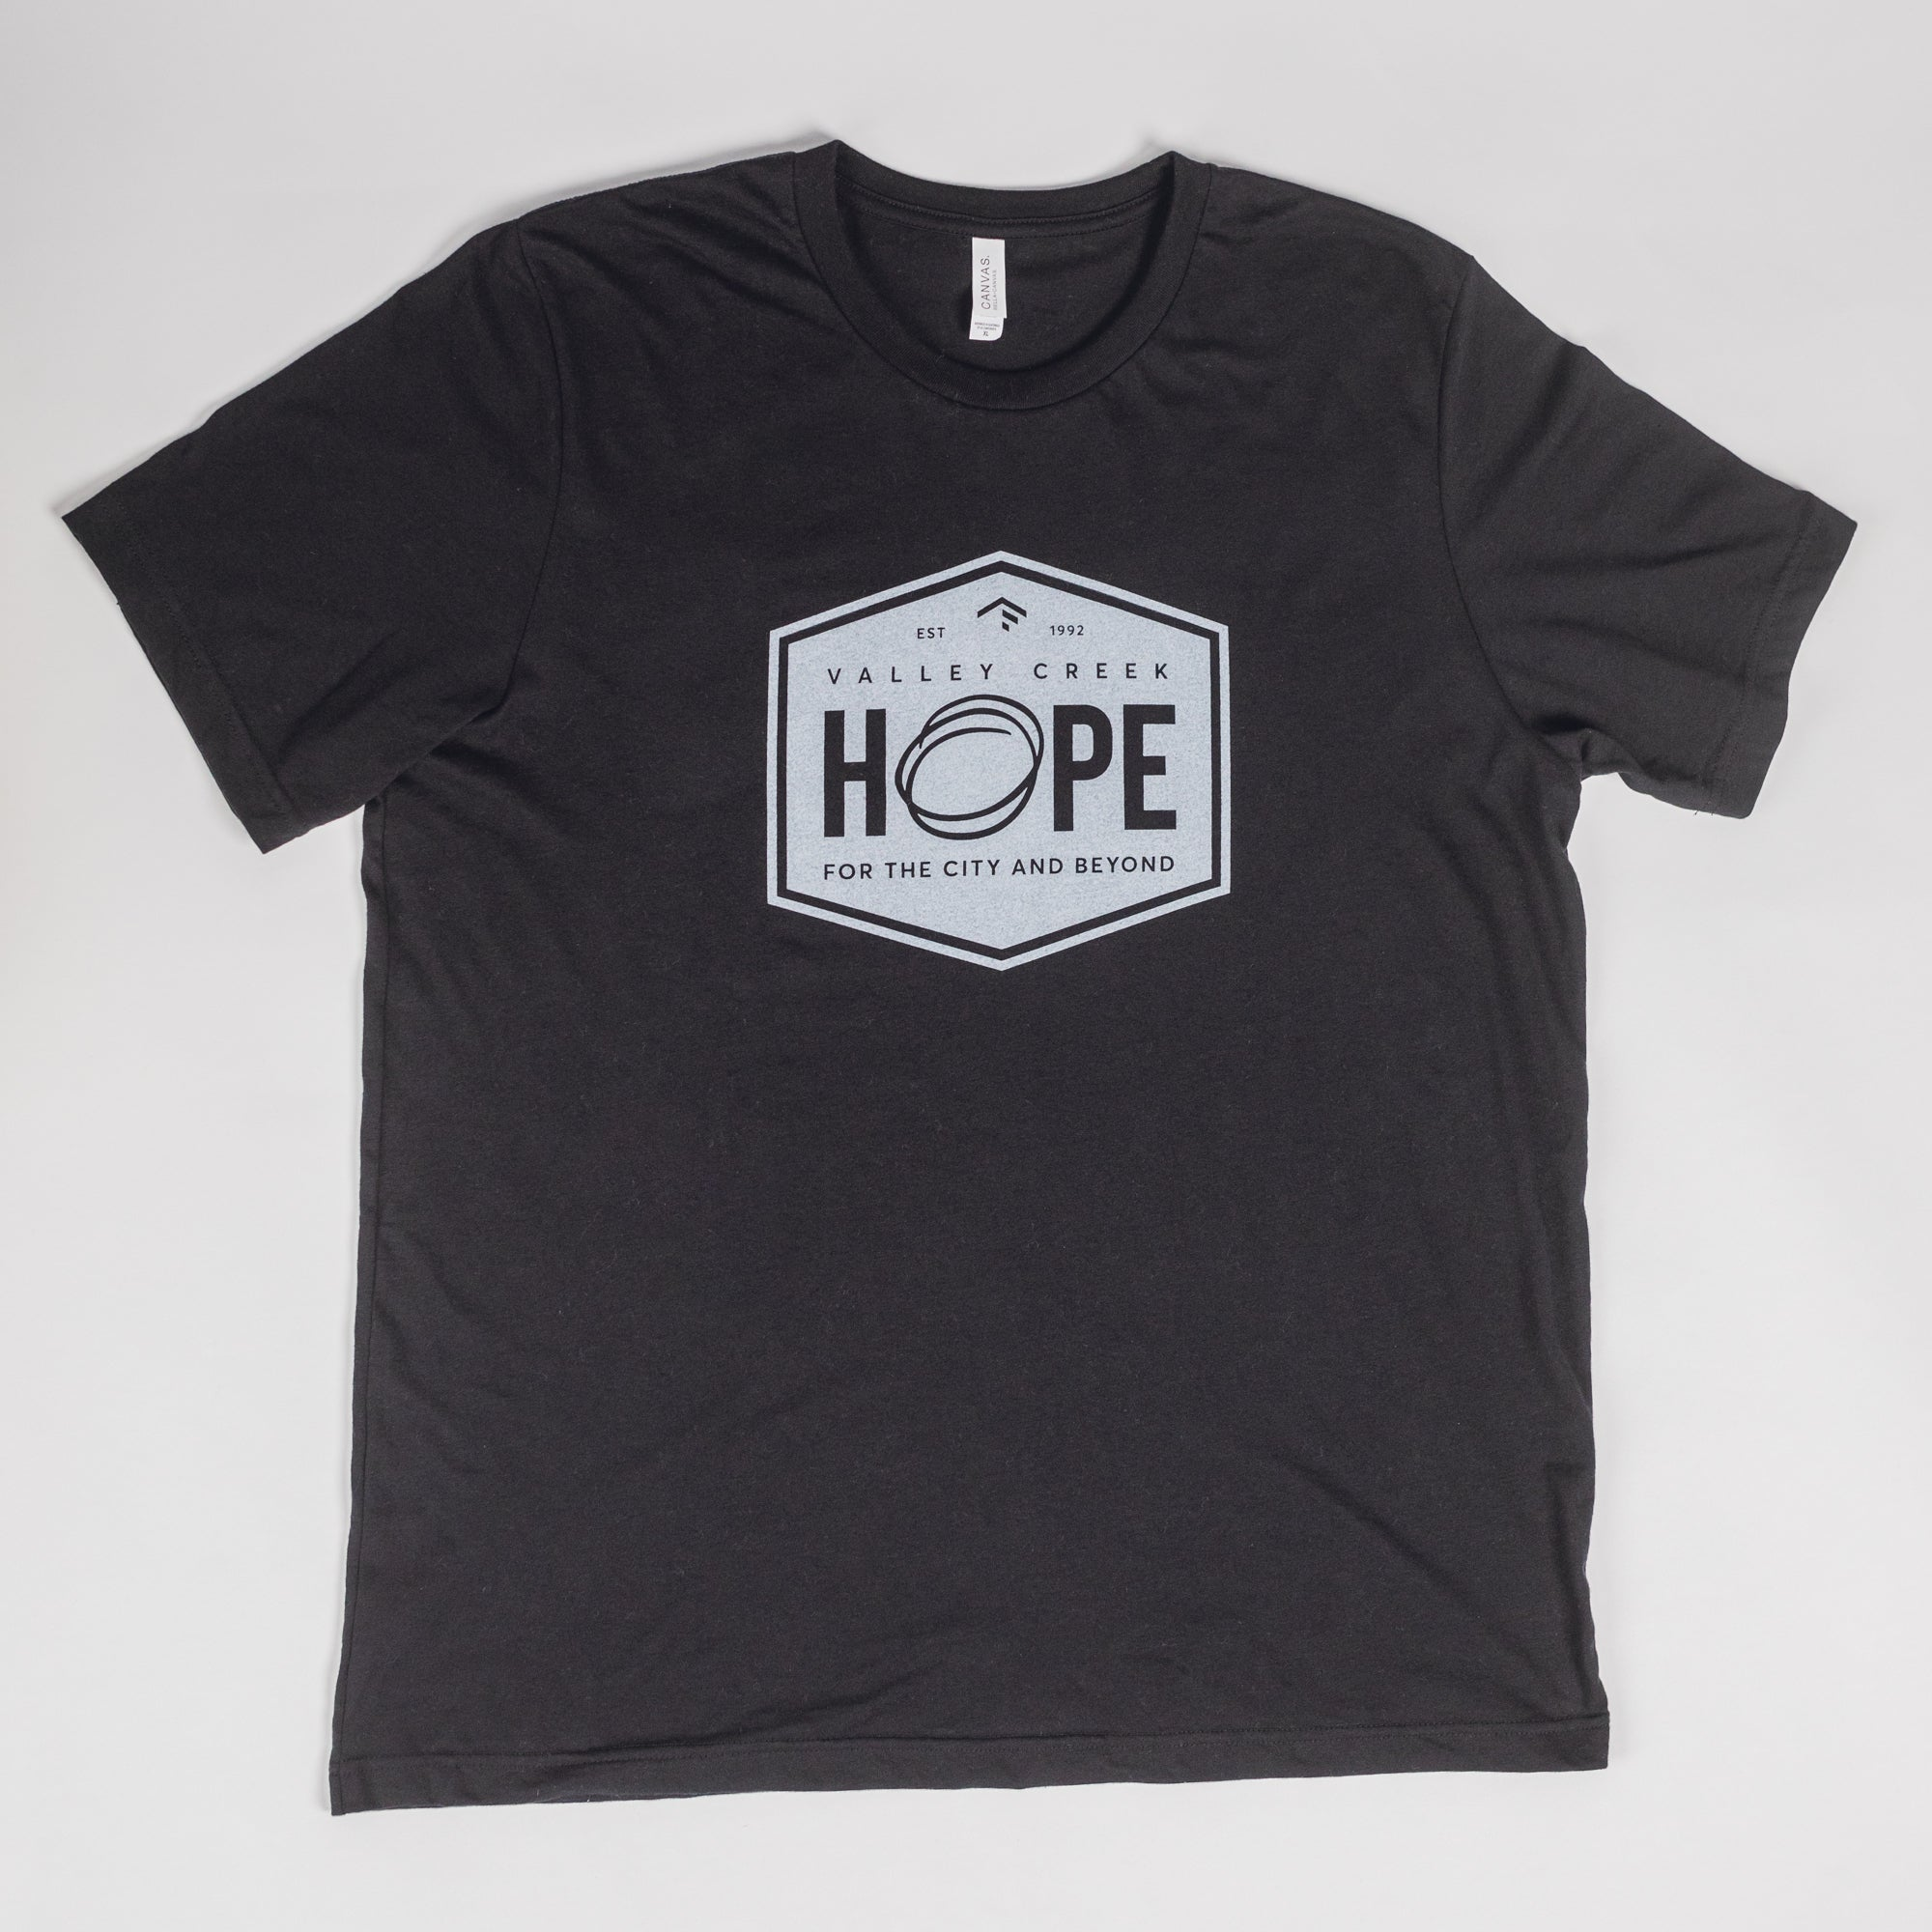 Hope For the City and Beyond - Short Sleeve Shirt